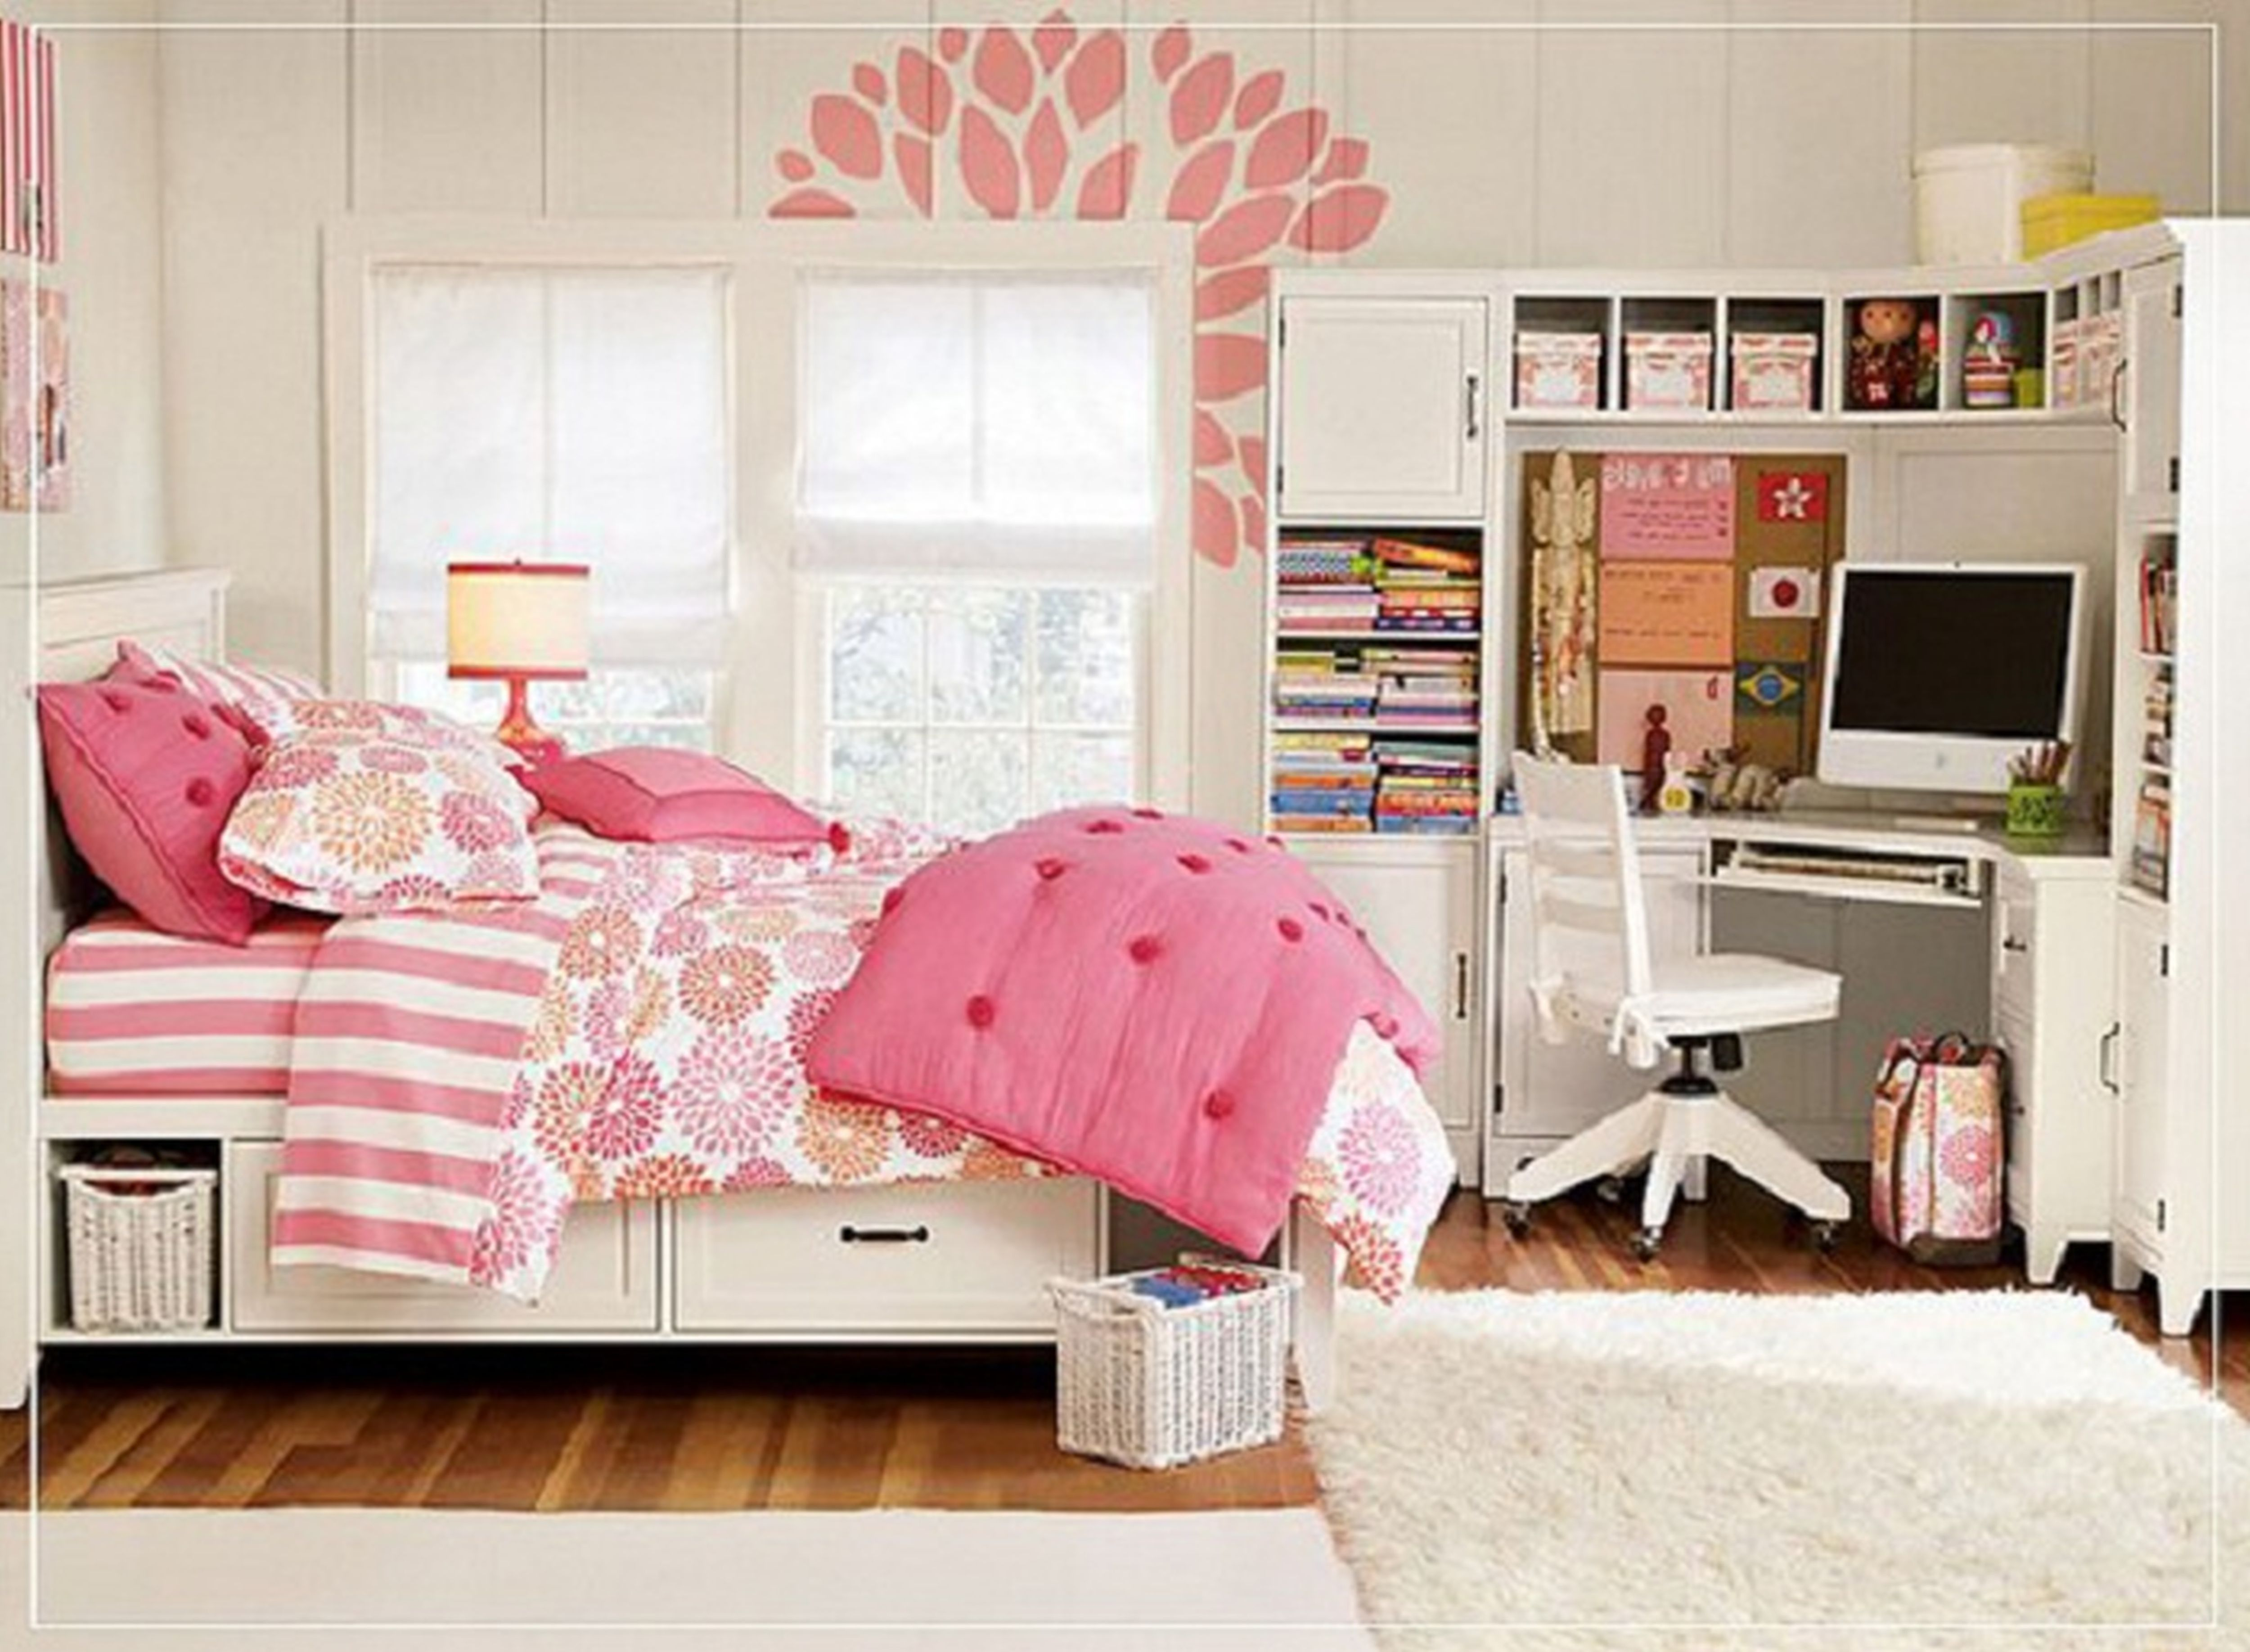 Cute Bedroom Designs For Small Rooms Impressive Cute Bedroom Ideas For Small Rooms  Small Bedroom  Pinterest Inspiration